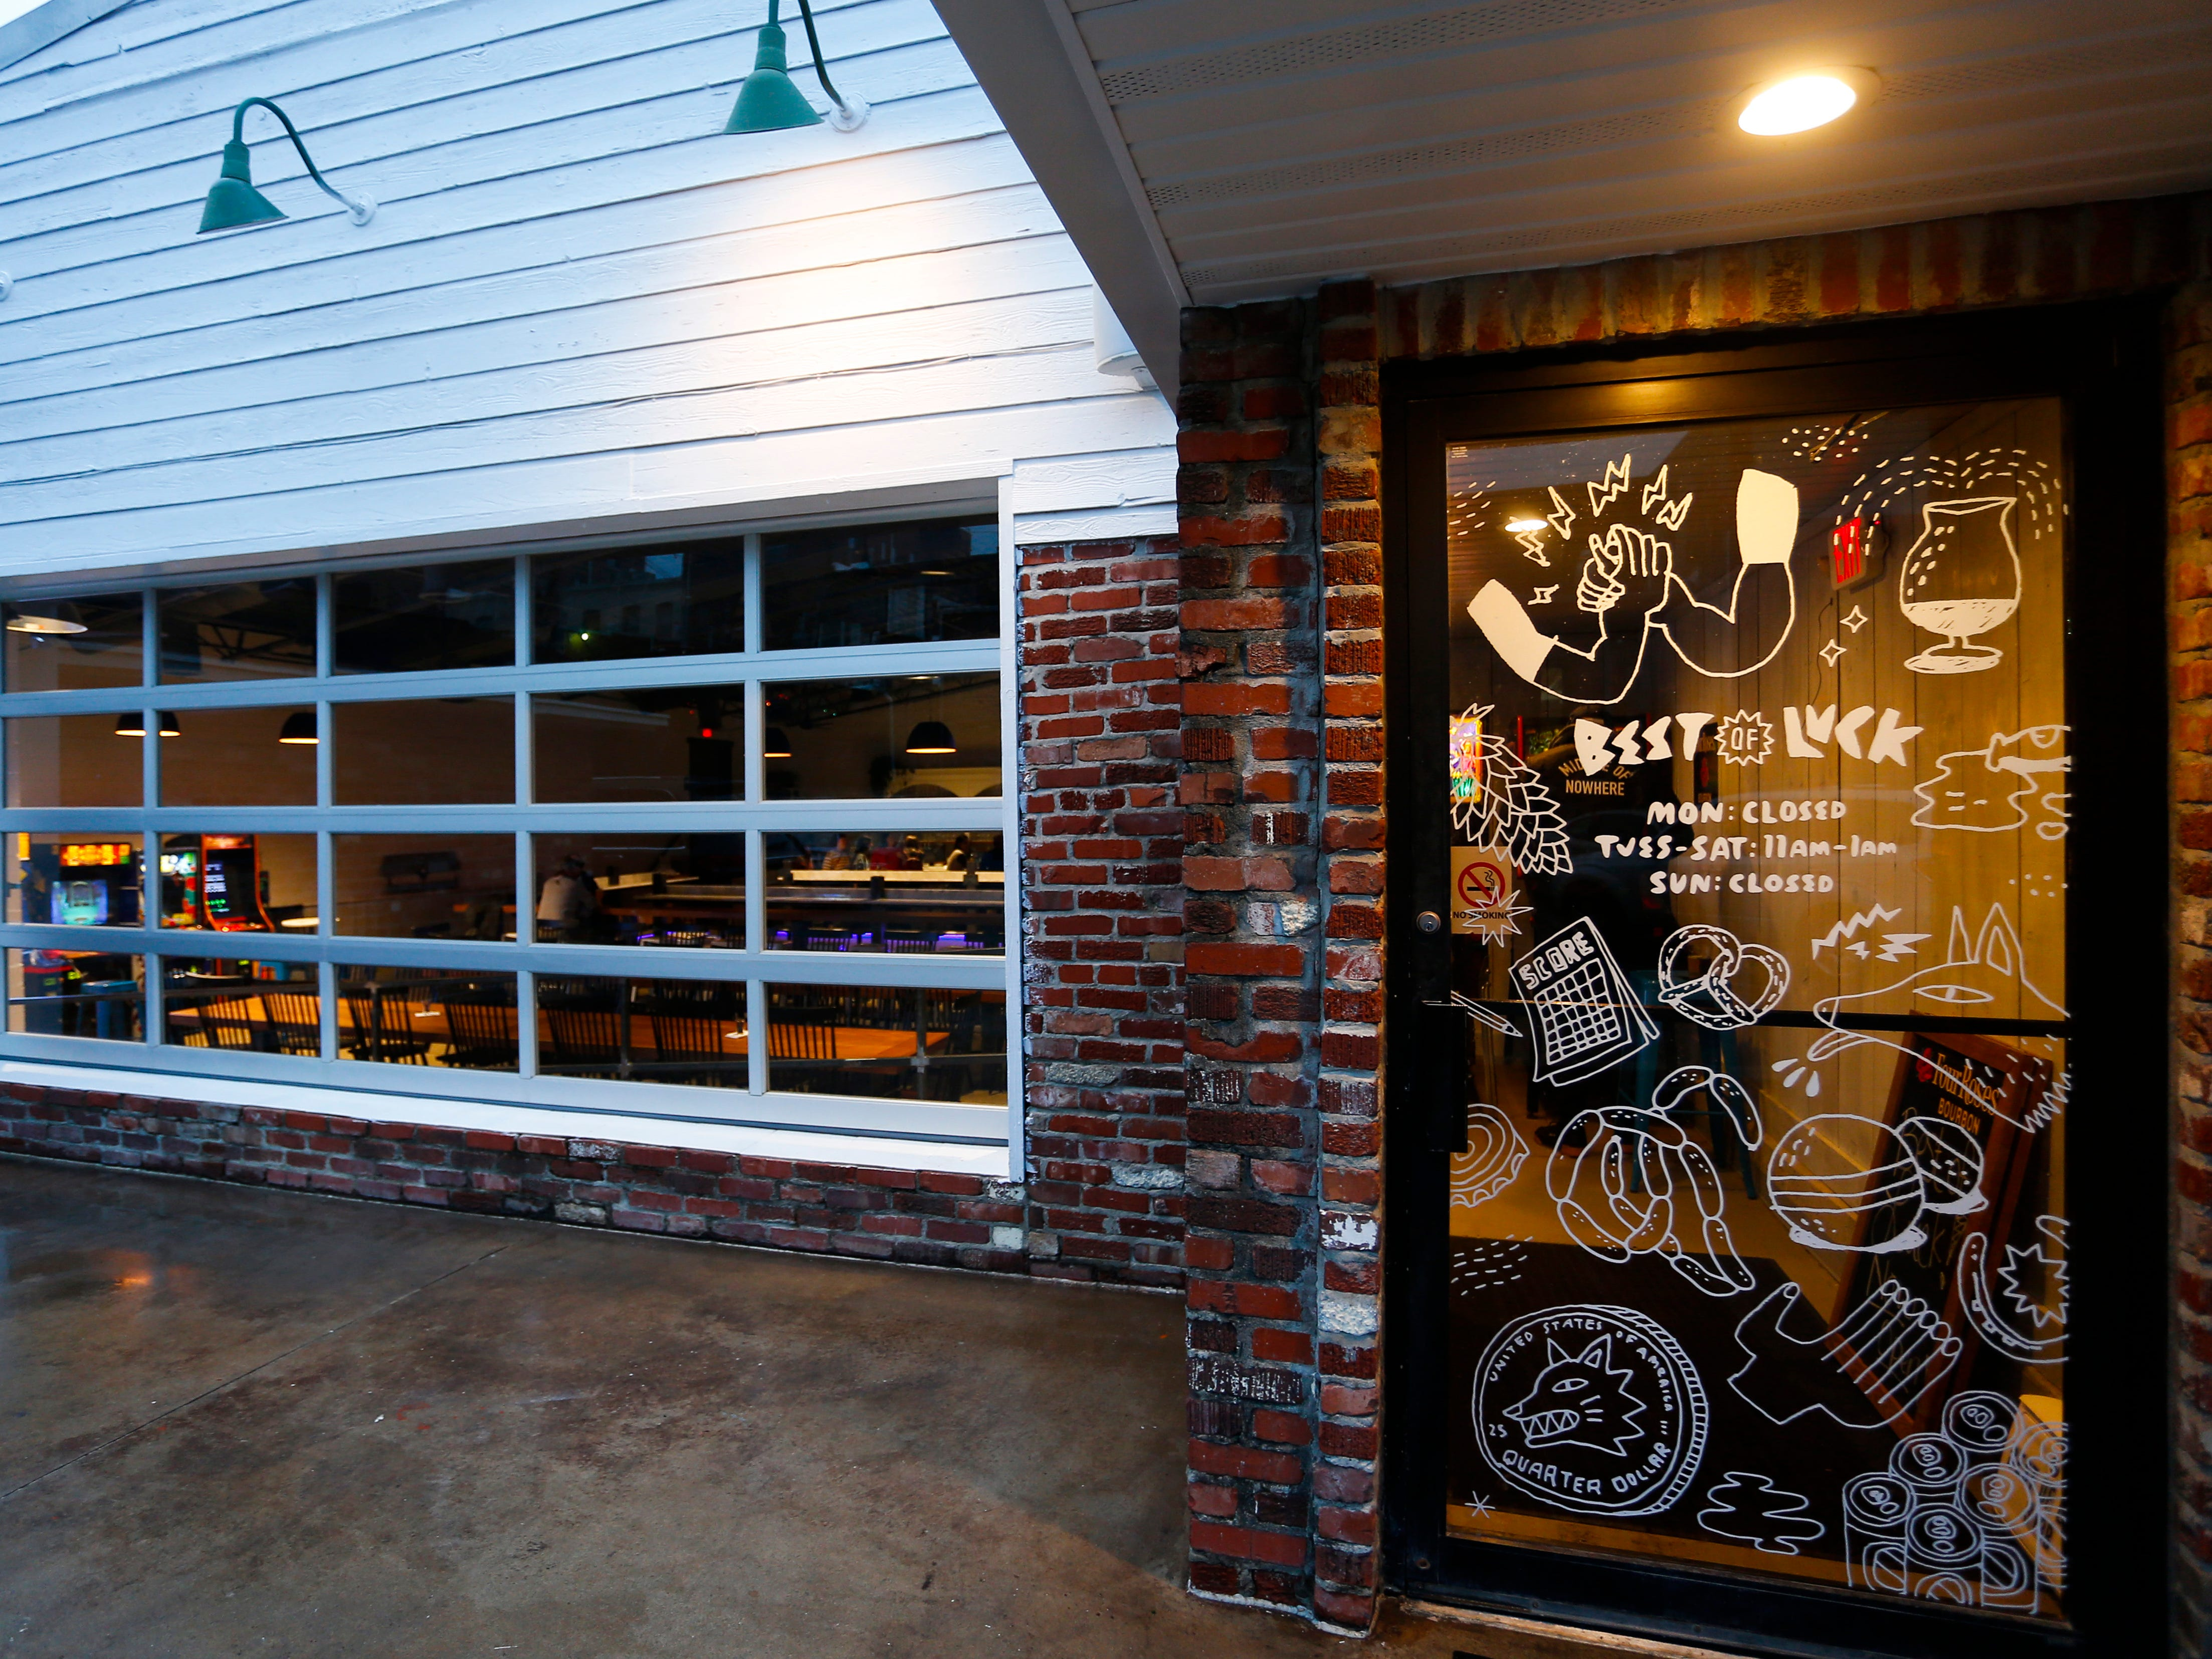 Best of Luck Beer Hall, located at 313B S.  Jefferson Ave., is a Scandinavian-style beer hall that has 40 beers on tap and opens on Friday, Feb. 8, 2019.